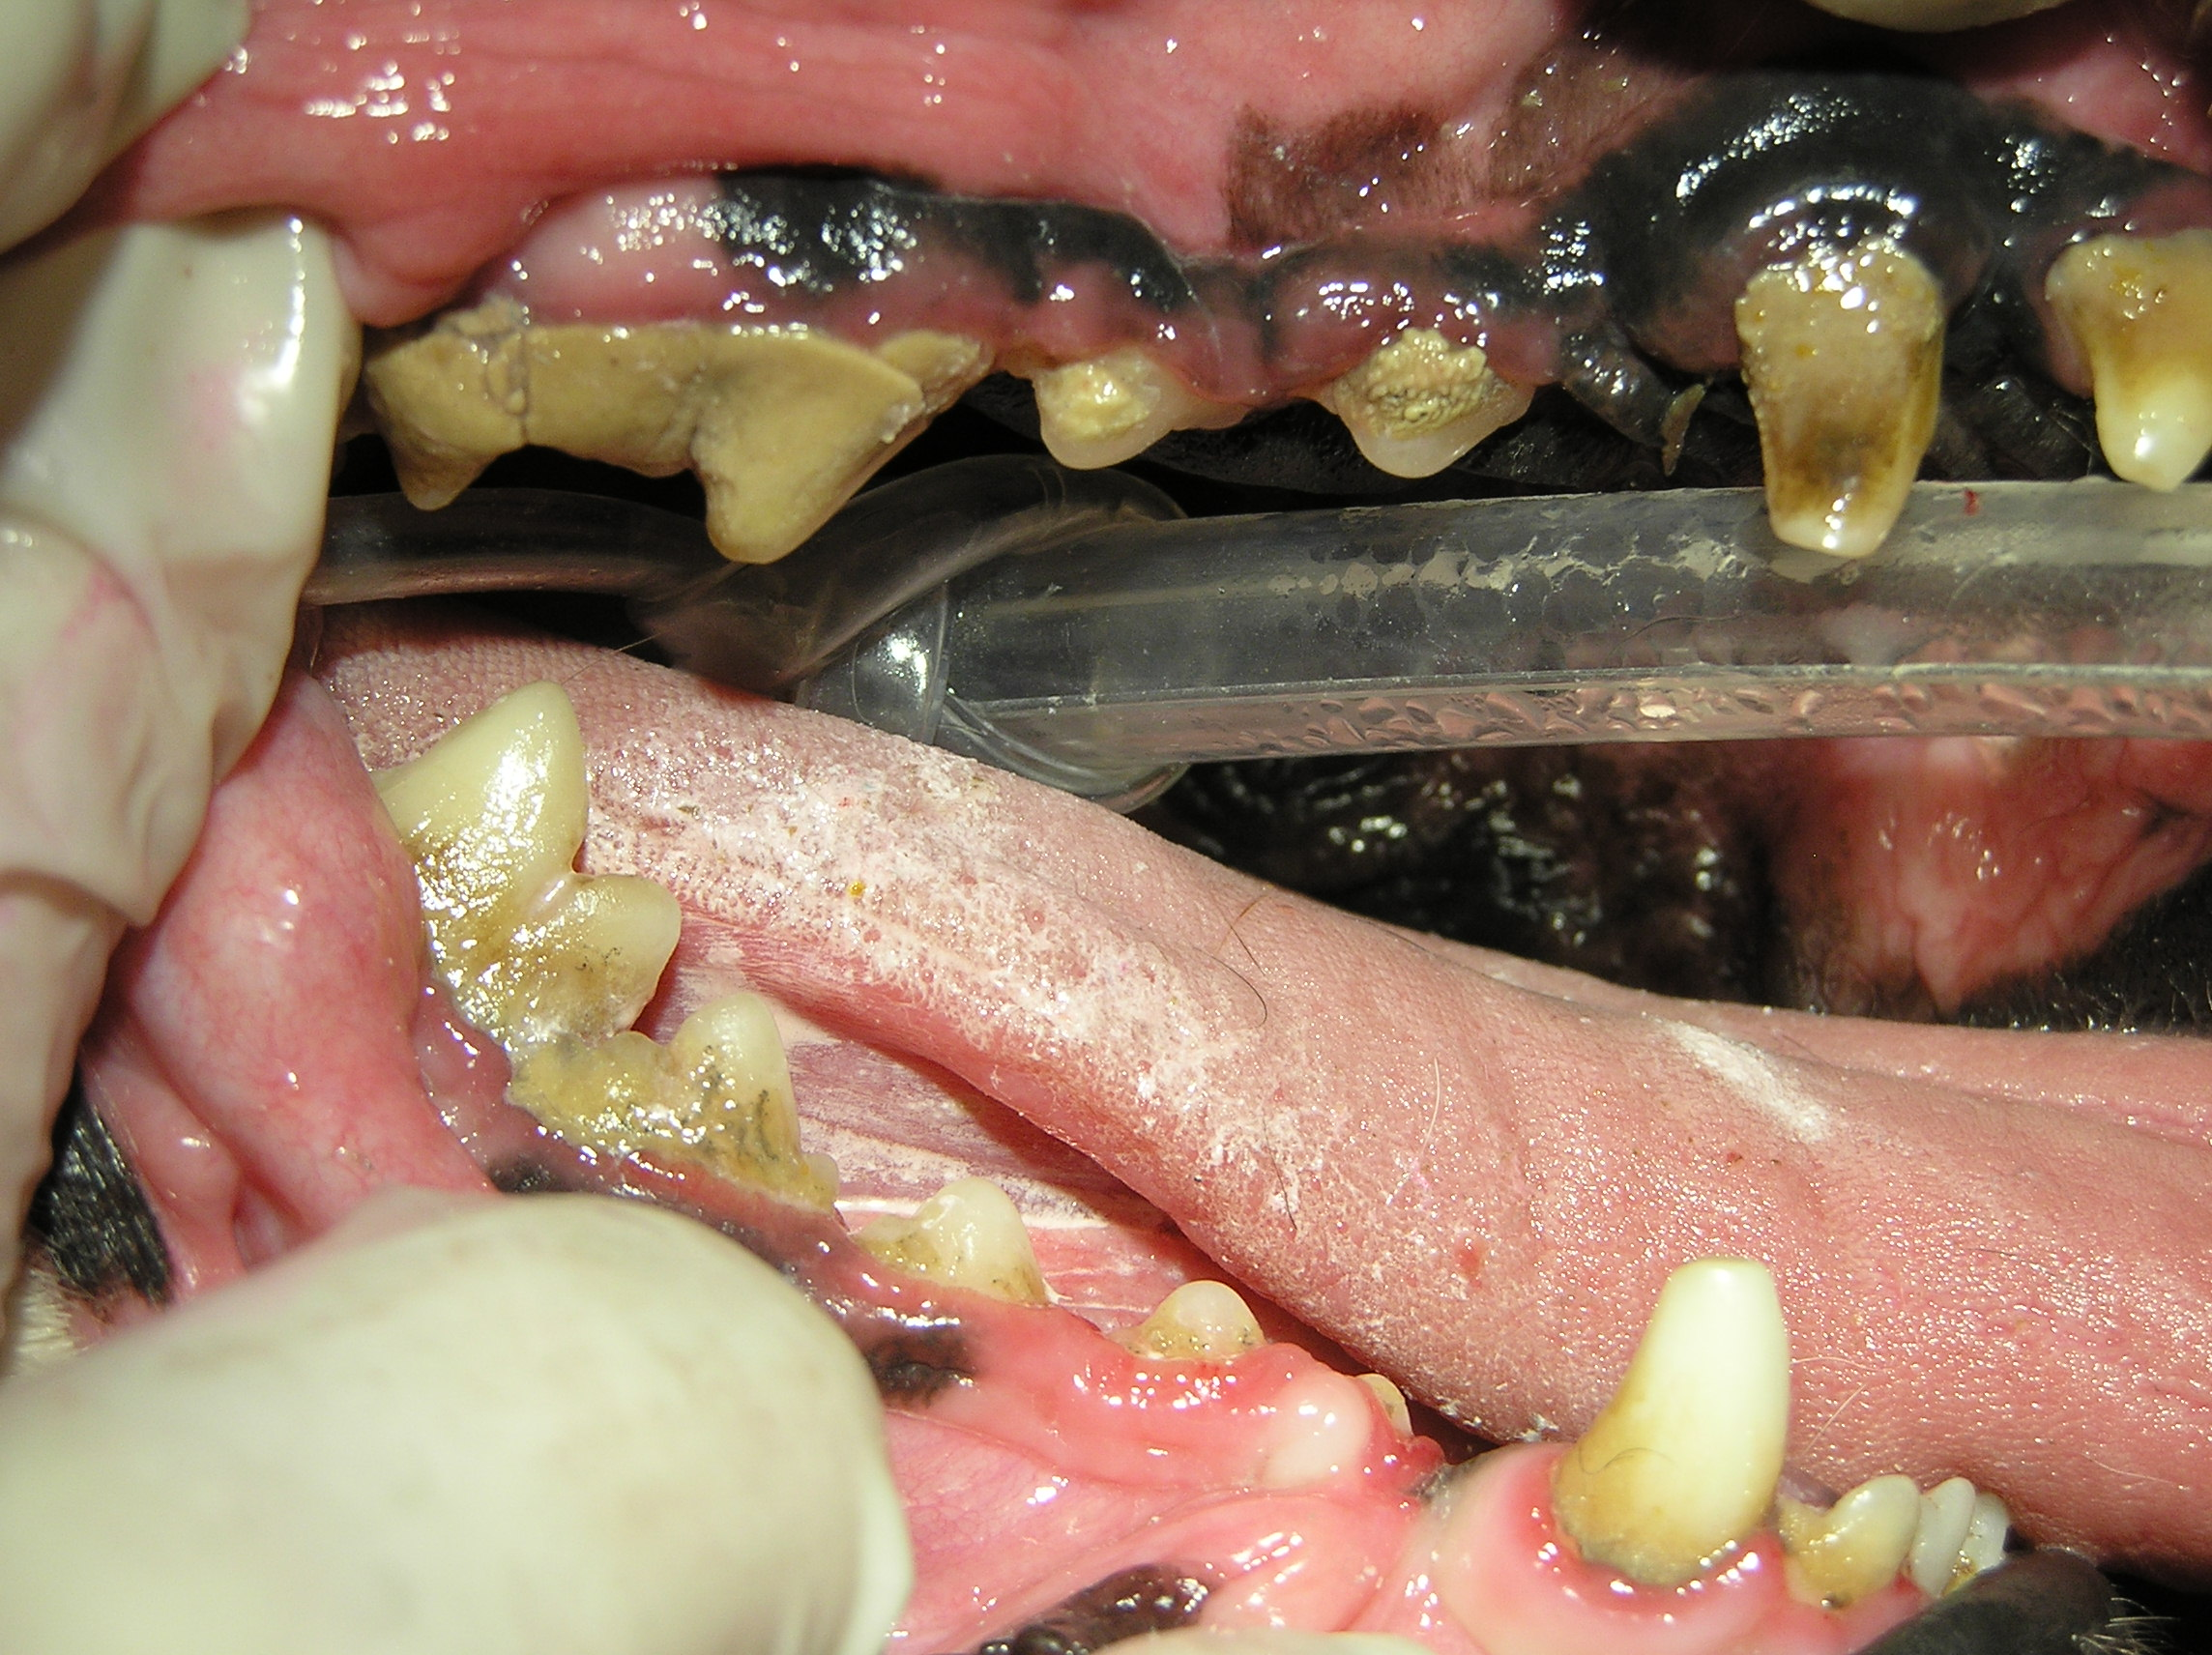 Dogs Mouth Has Black On Gums